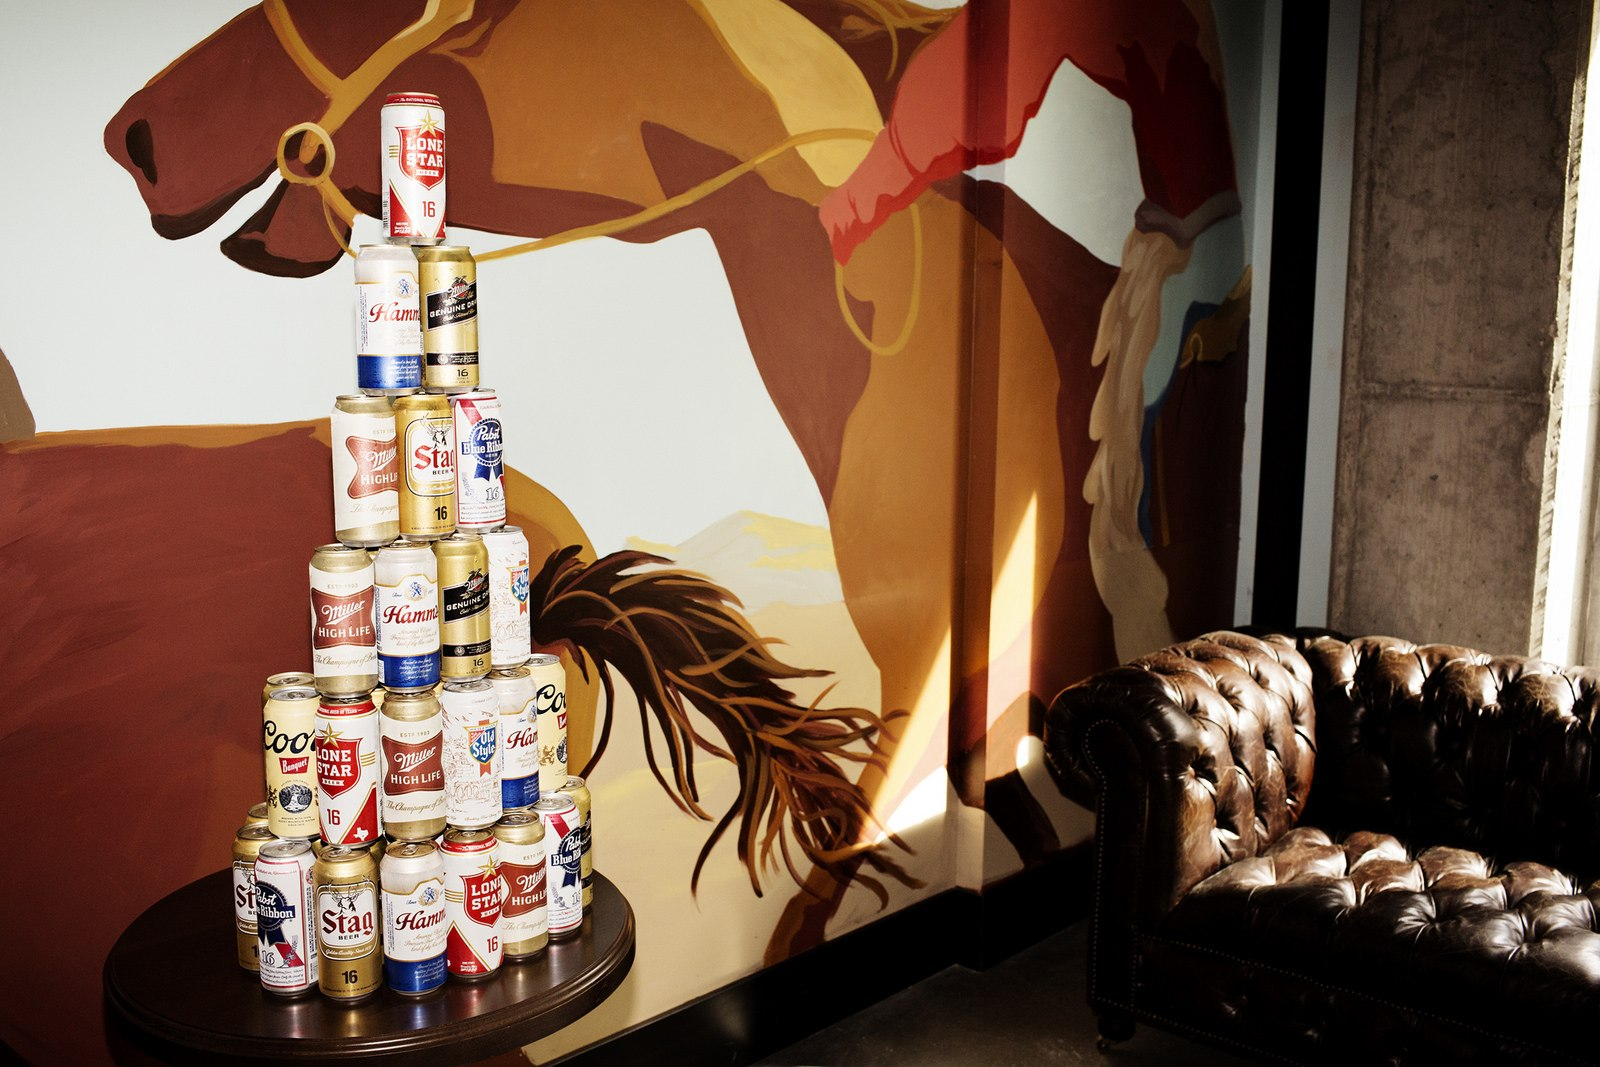 Beer cans and cool background for dalton and wade restaurant